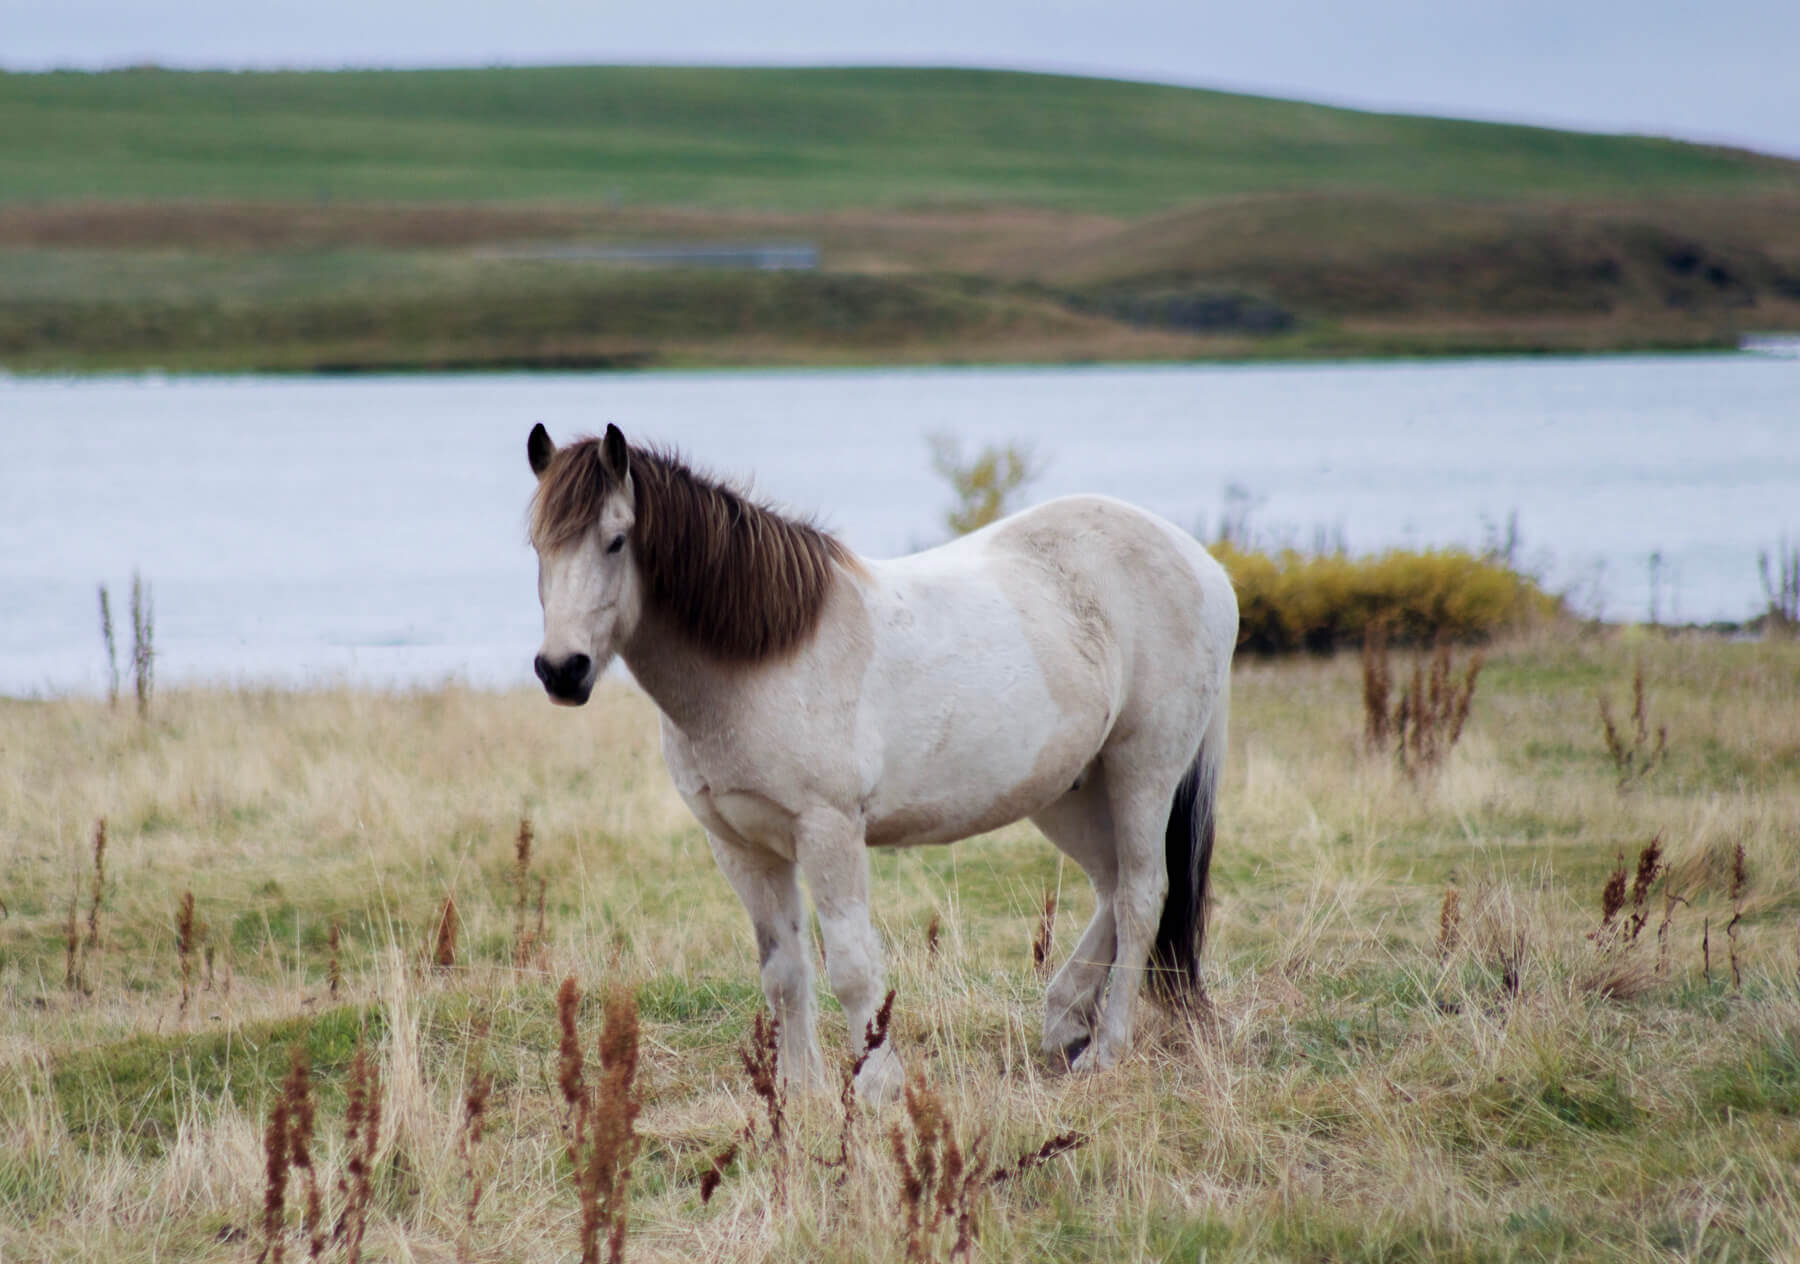 A patchy Icelandic pony standing in a field near a lake